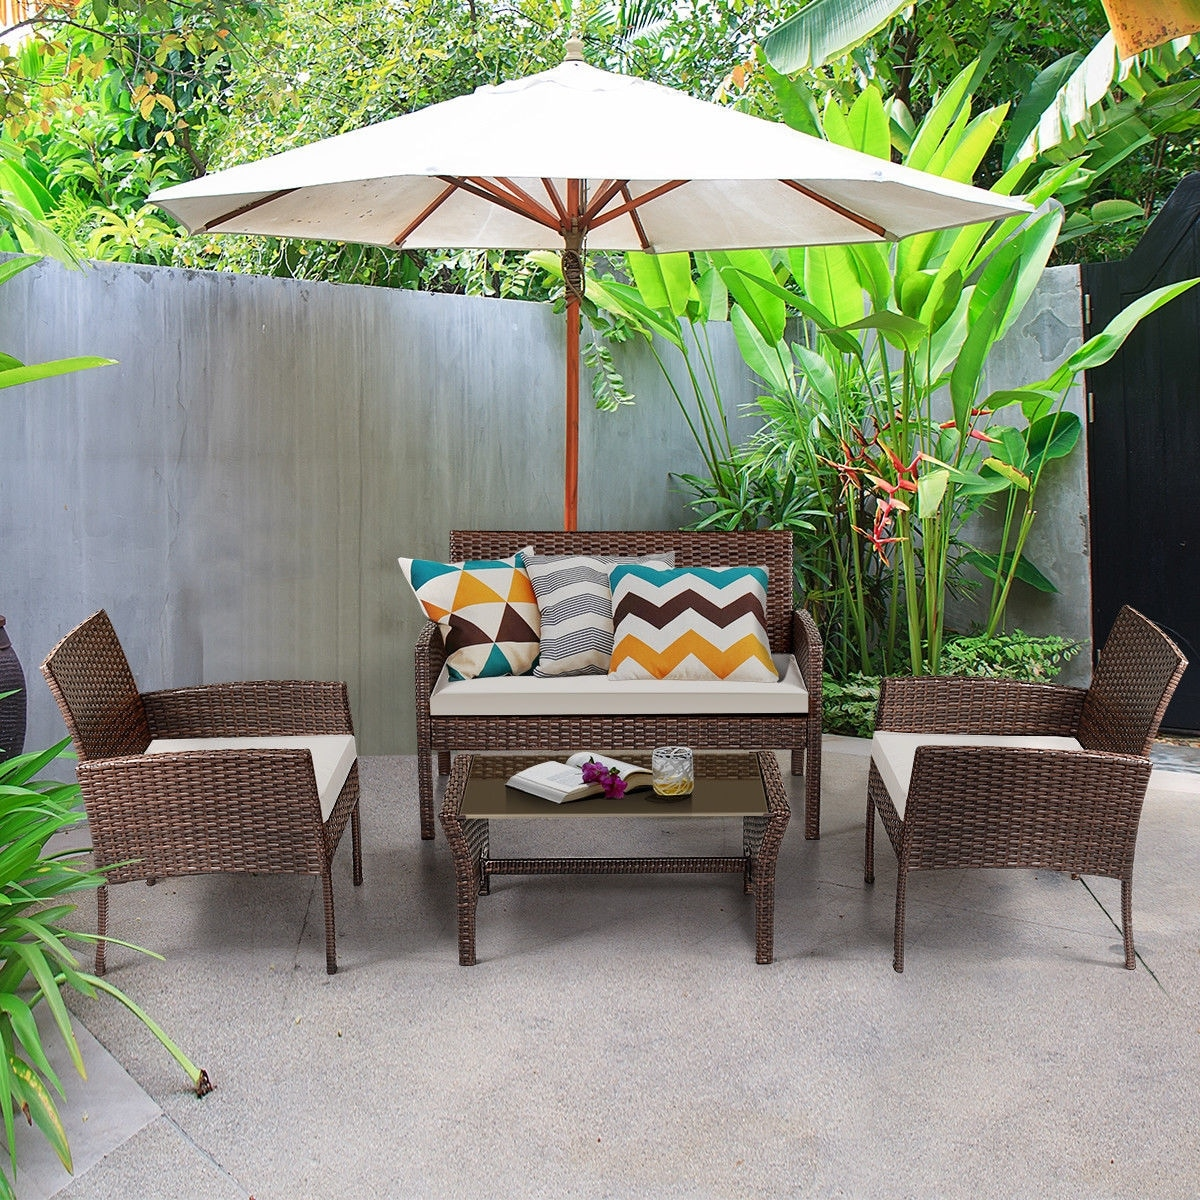 Costway 4 Pieces Patio Furniture Wicker Rattan Sofa Set Garden Coffee Table As Pic Free Shipping Today 16954761